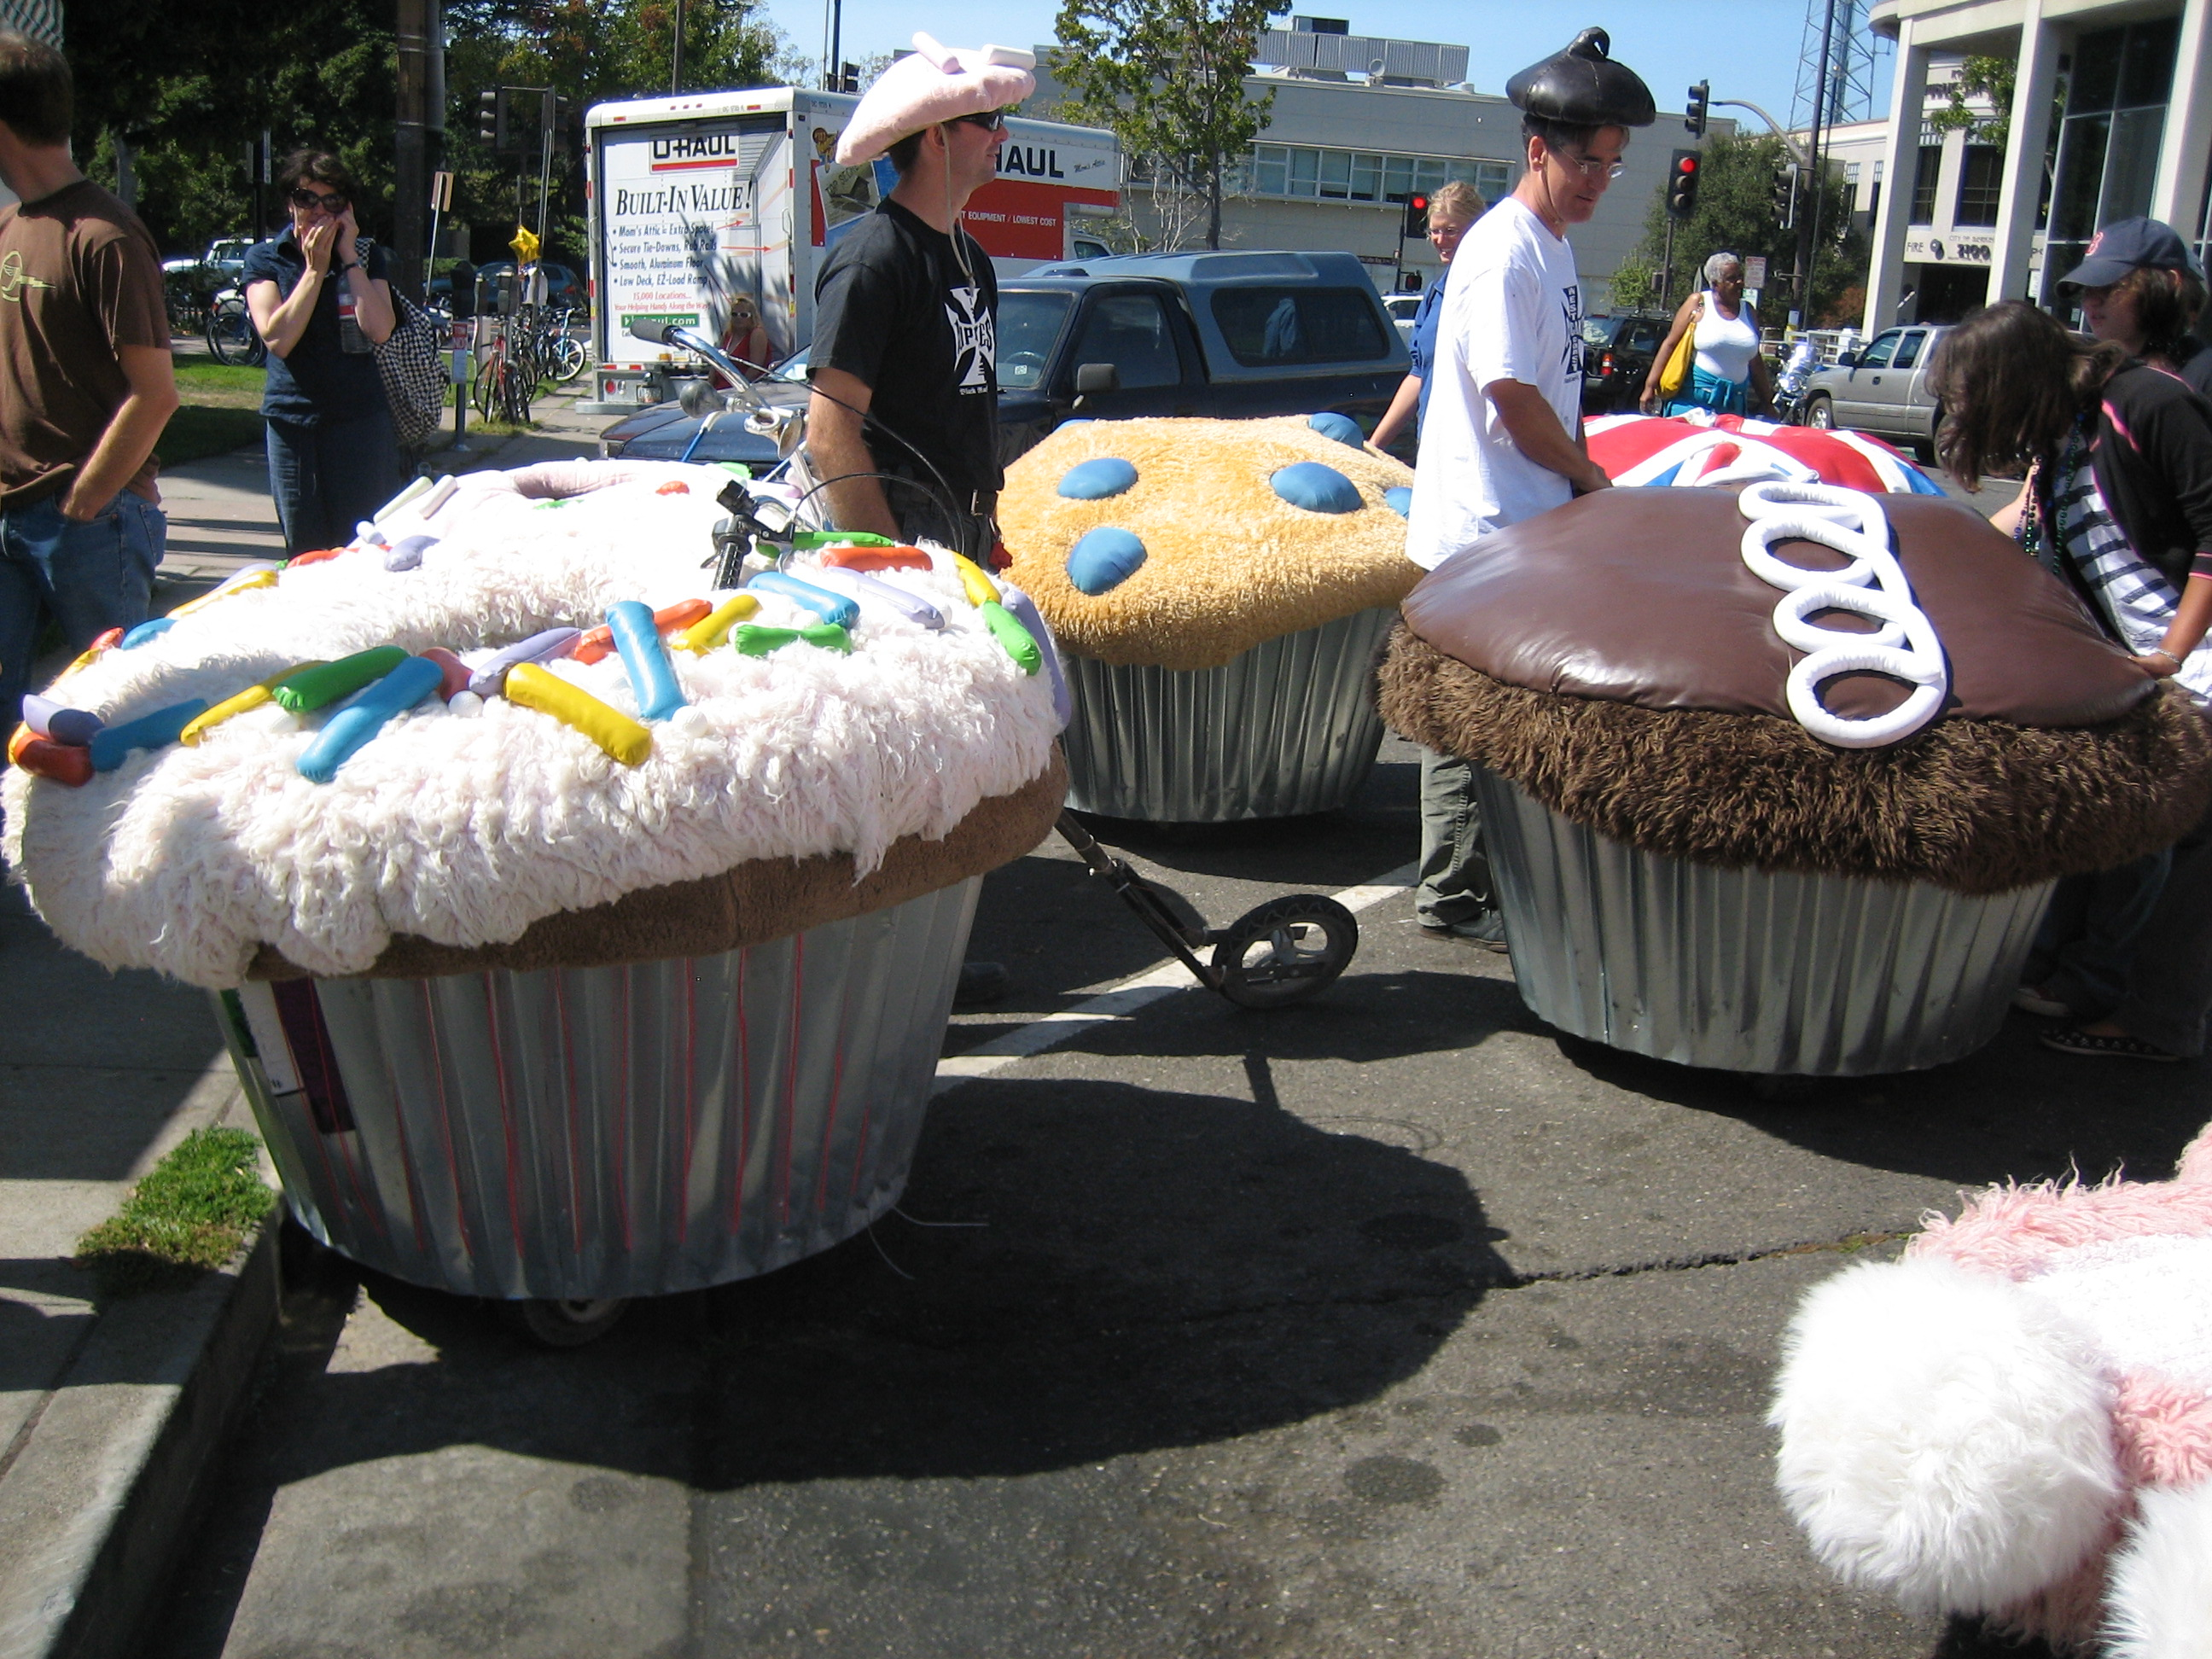 There's nothing more Berkeley than baked goods.